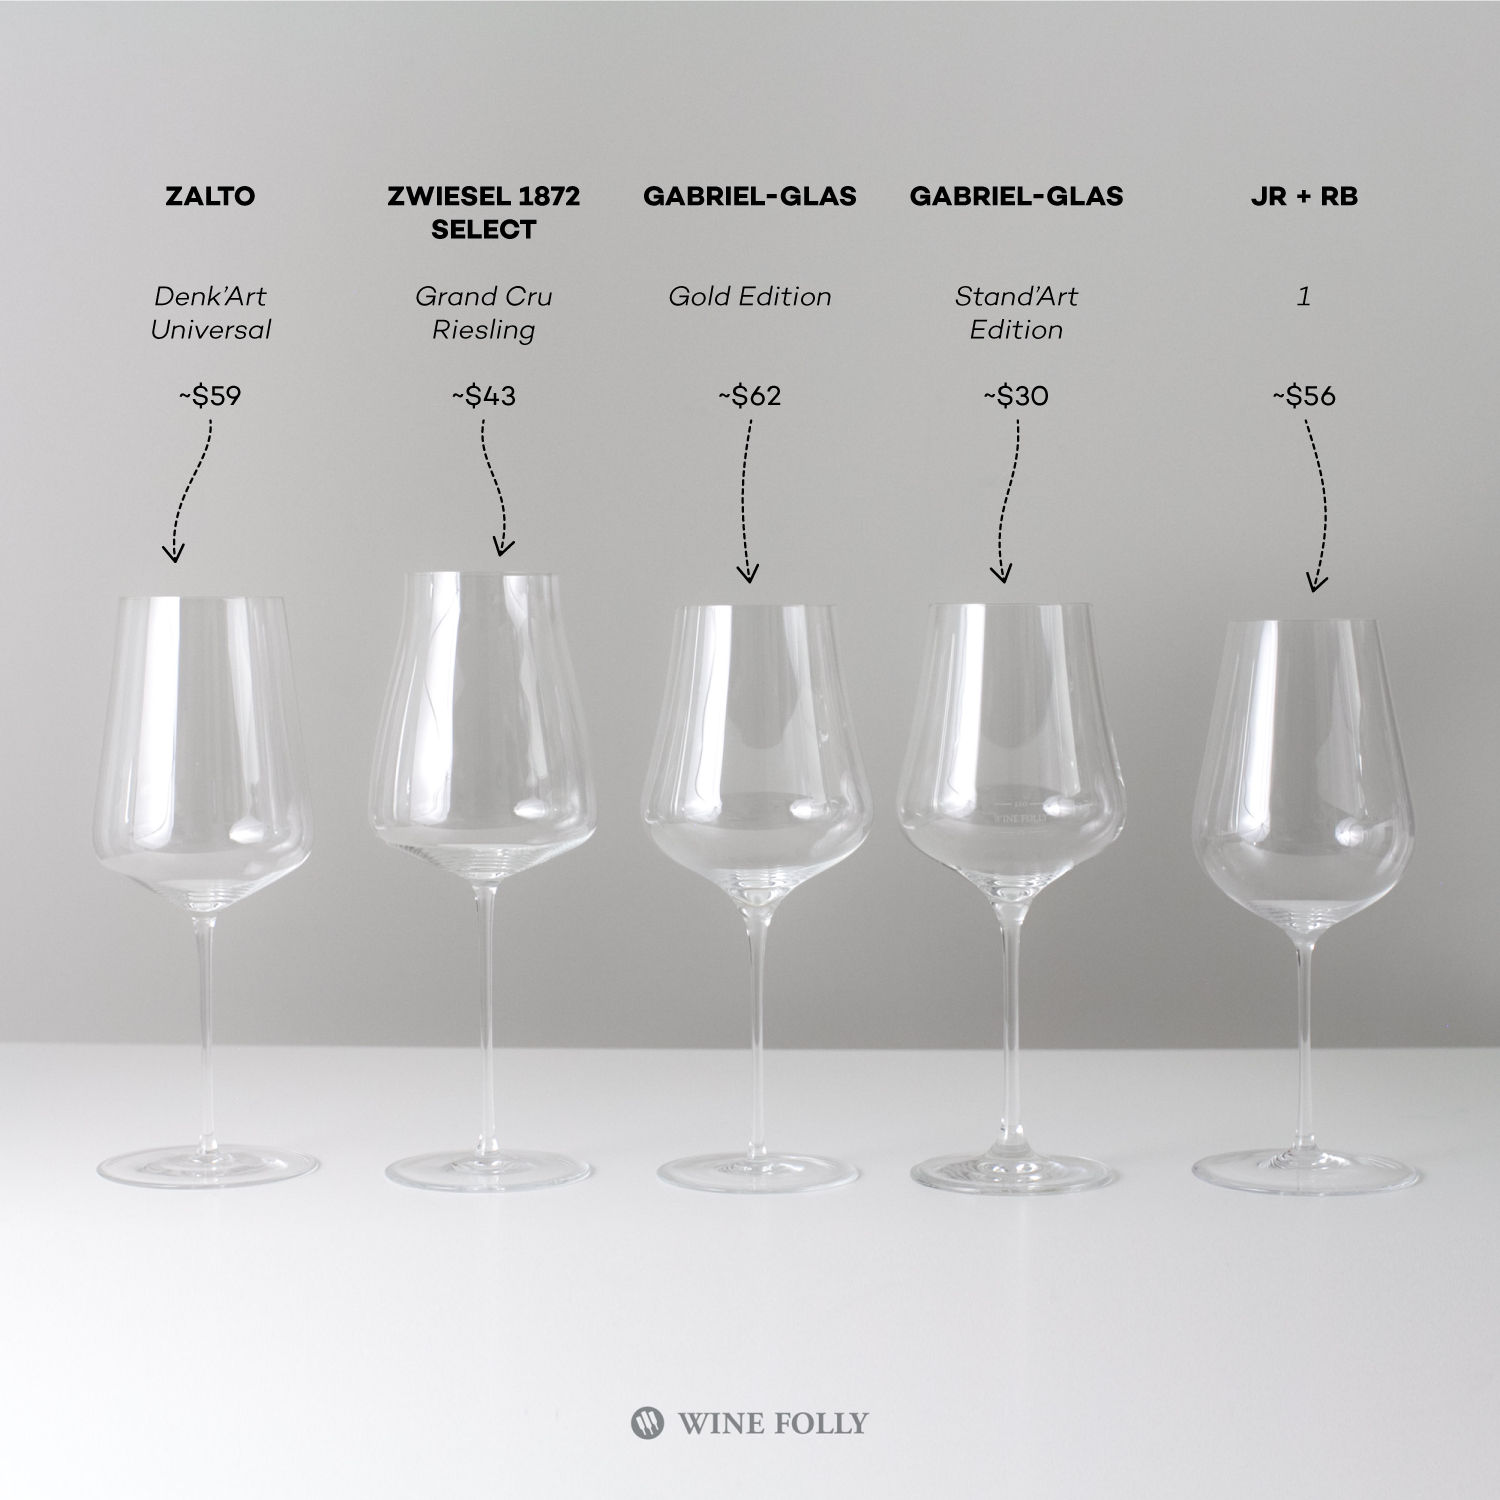 Best Wine Glasses Tested by Wine Folly's Madeline Puckette are all crystal and of exceptional quality.